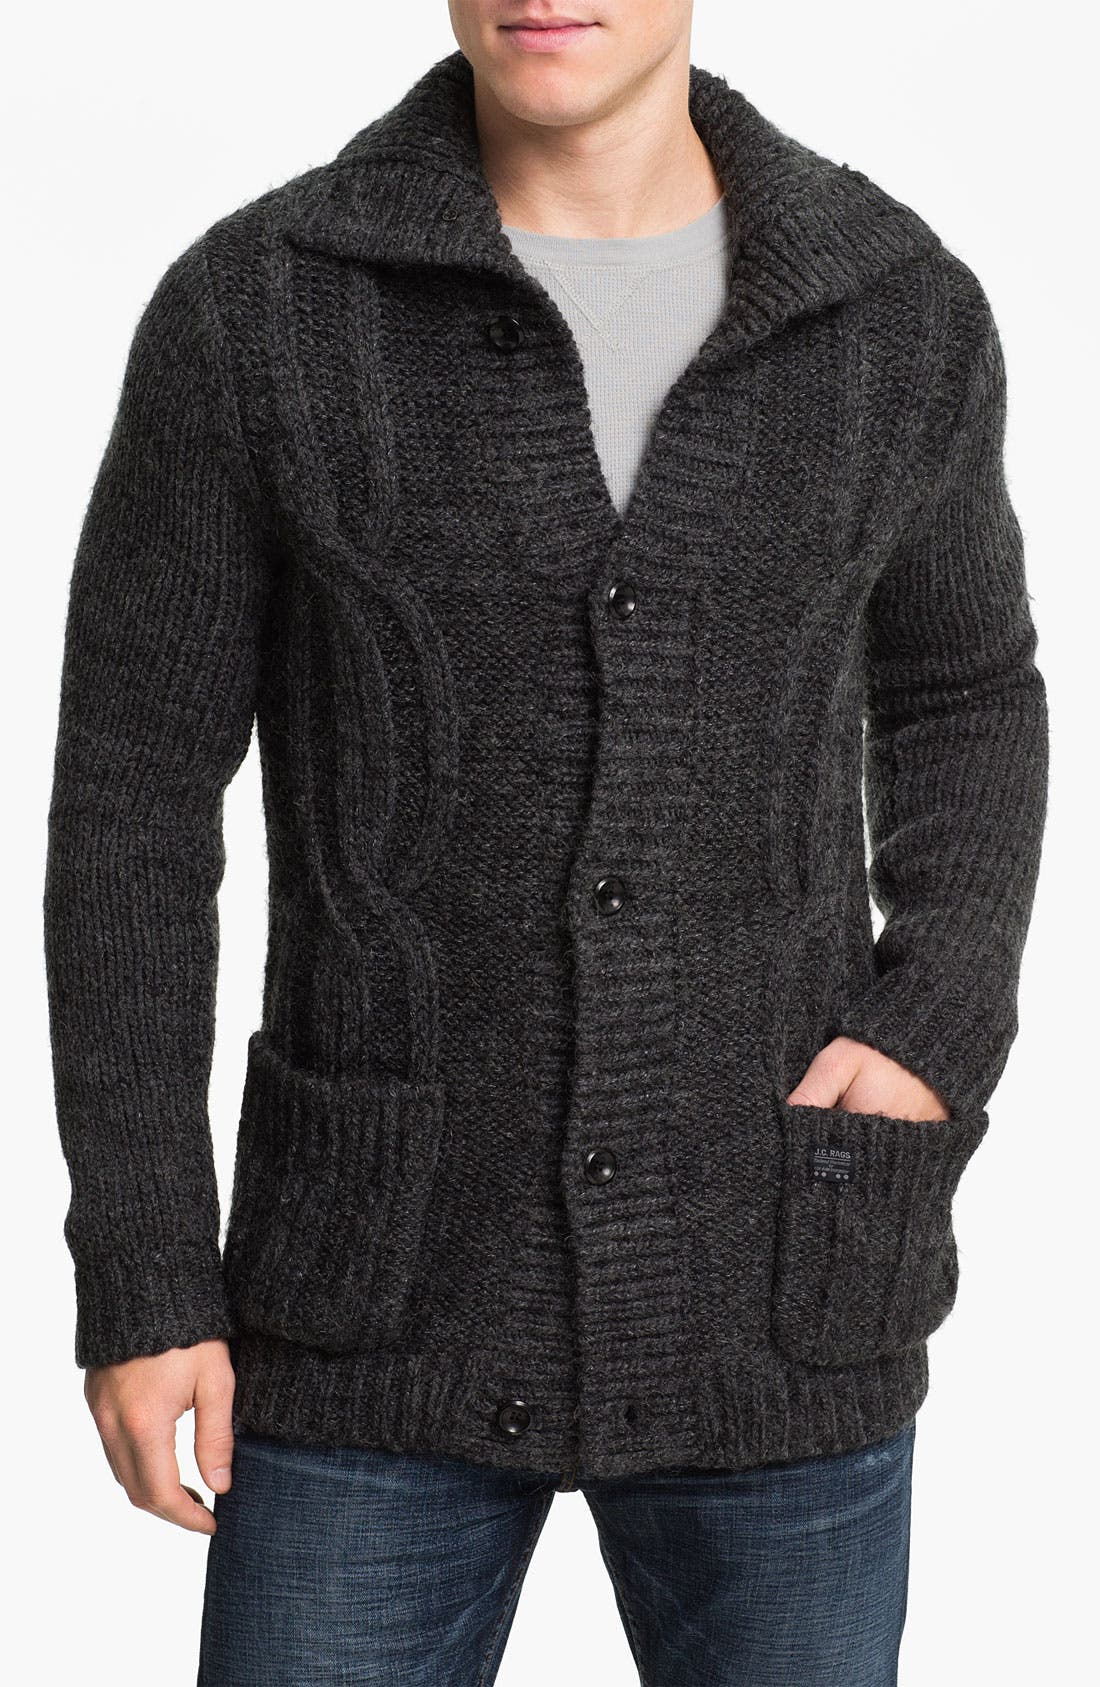 Main Image - J.C. Rags Cable Knit Cardigan